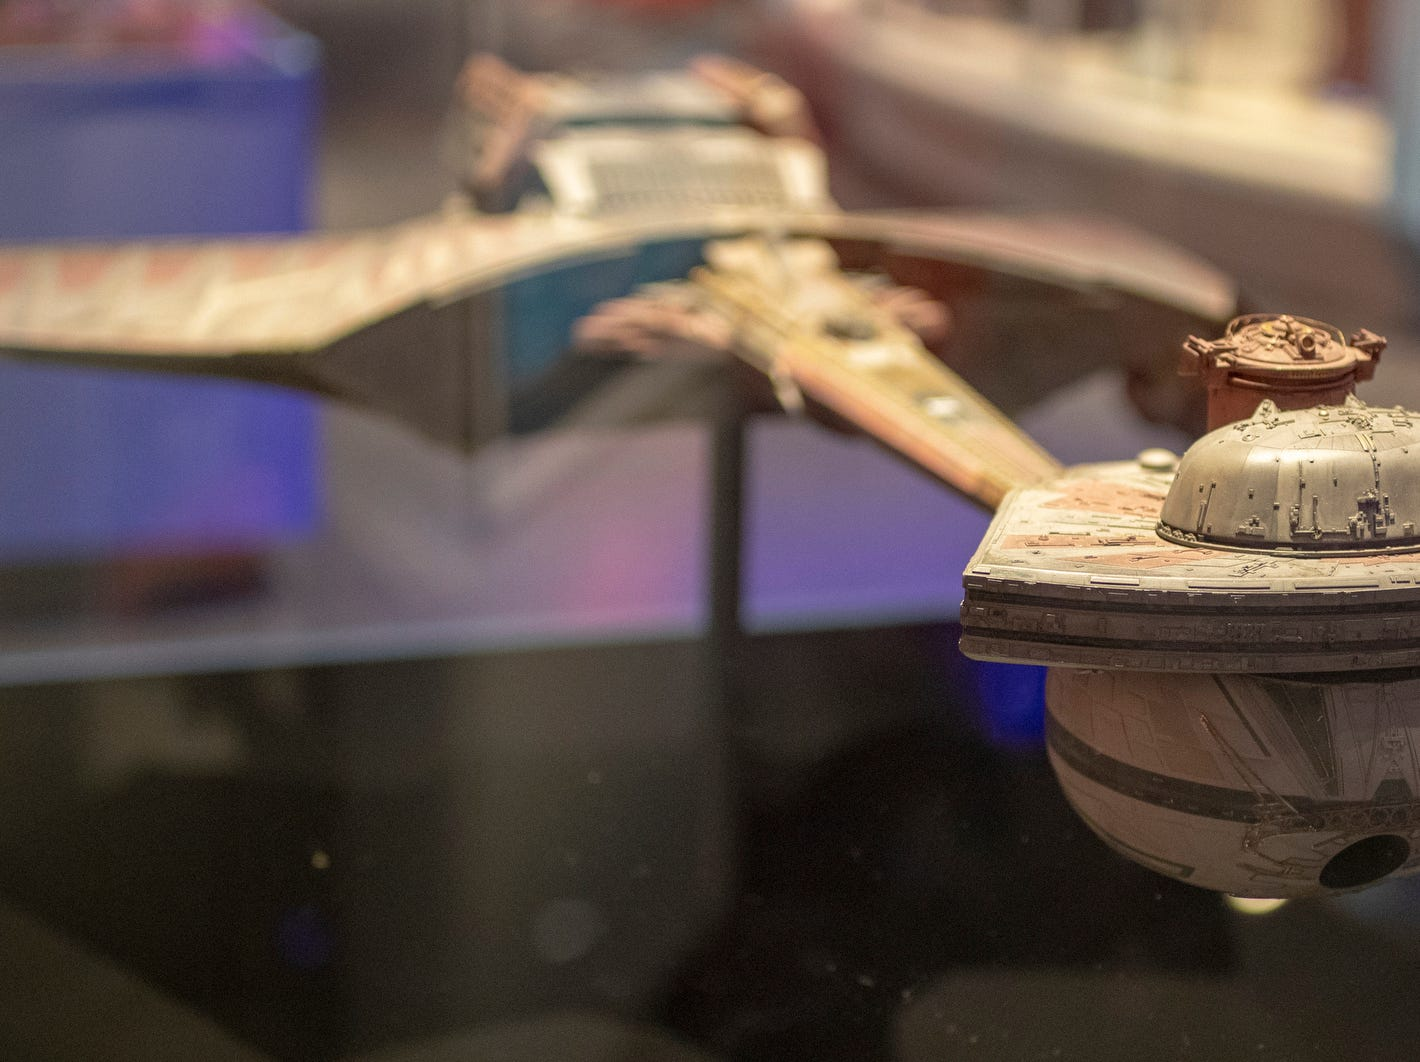 """A miniature of the Klingon K't'inga-class battle cruiser, which debuted in """"Star Trek: The Motion Picture,"""" is seen at The Children's Museum of Indianapolis, Indianapolis, Wednesday, Jan. 23, 2019. The """"Star Trek: Exploring New Worlds"""" exhibit is made up of set pieces, ship models and outfits used during various Star Trek shows and movies and is on display at the museum from Feb. 2 through April 7, 2019."""